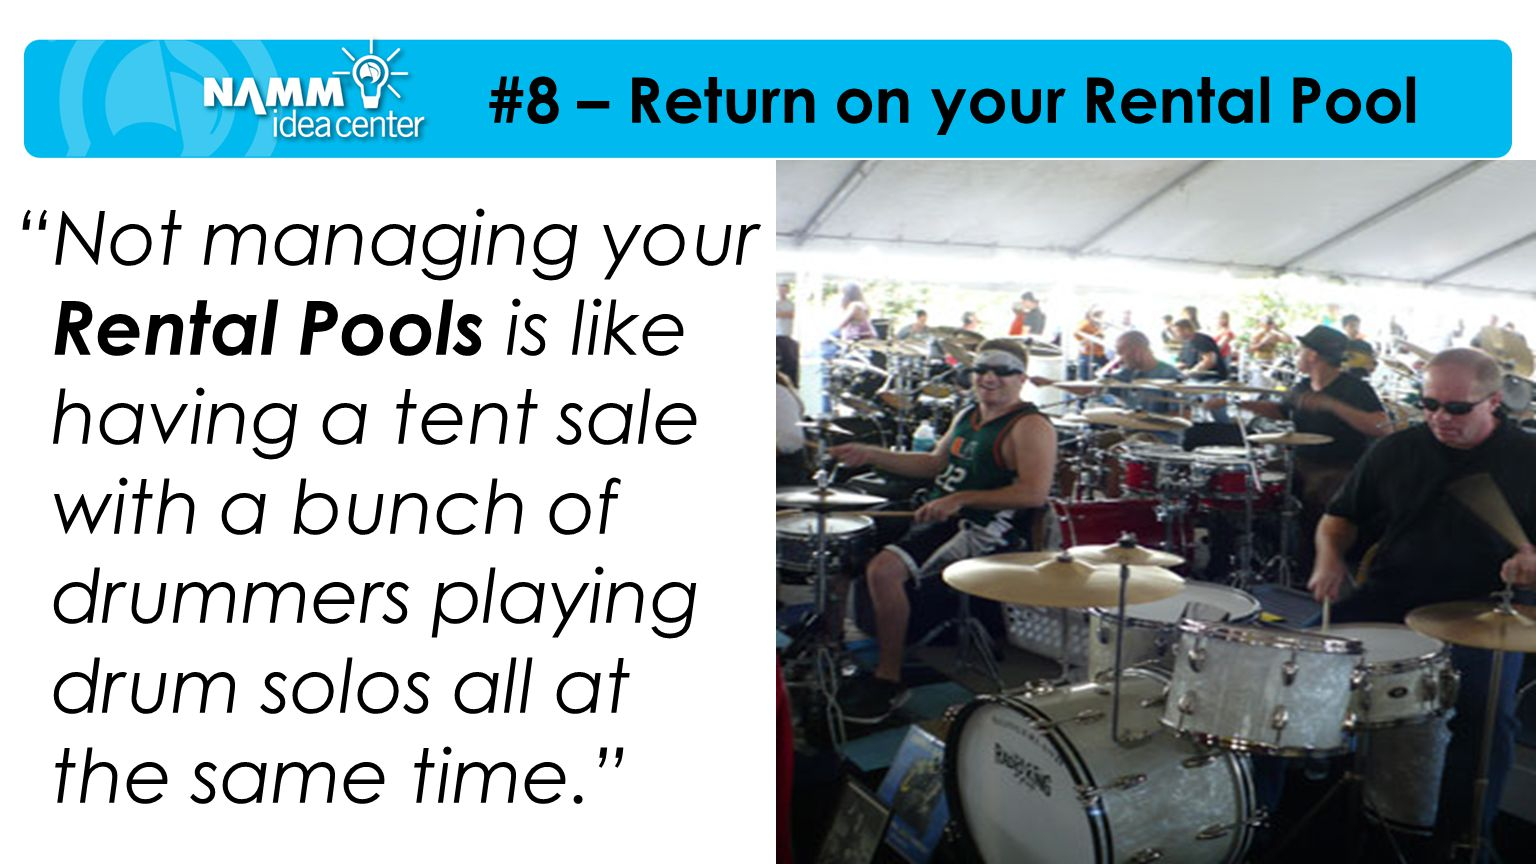 """Not managing your Rental Pools is like having a tent sale with a bunch of drummers playing drum solos all at the same time."" #8 – Return on your Rent"